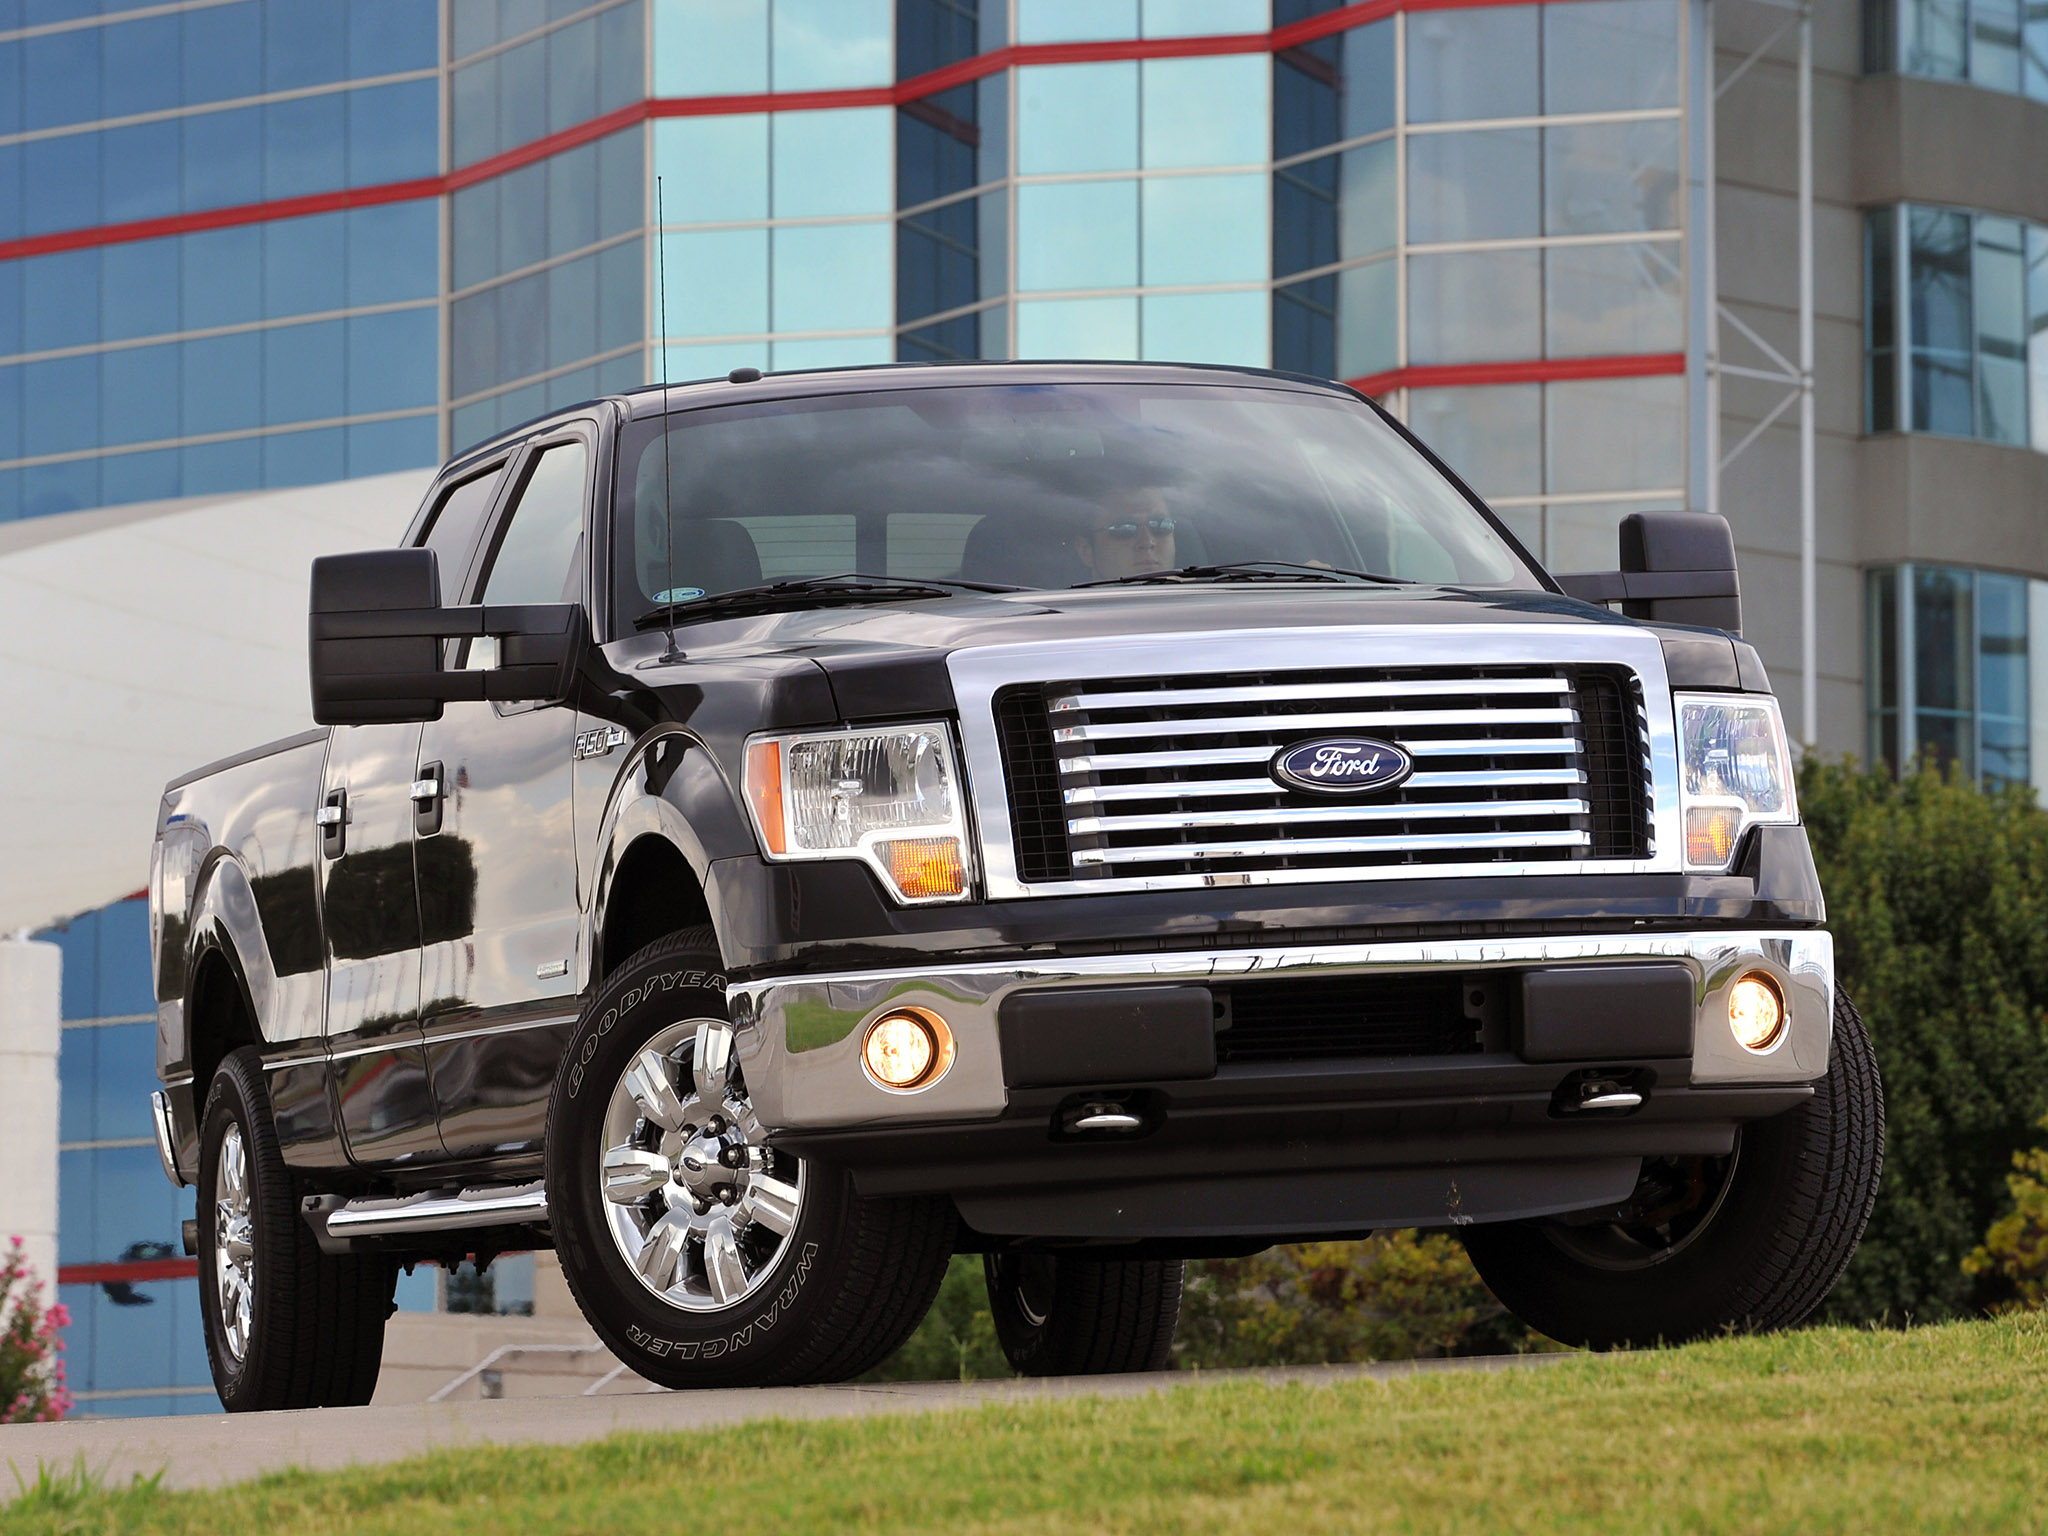 2011 Ford F 150 truck 4x4 f wallpaper background 2048x1536